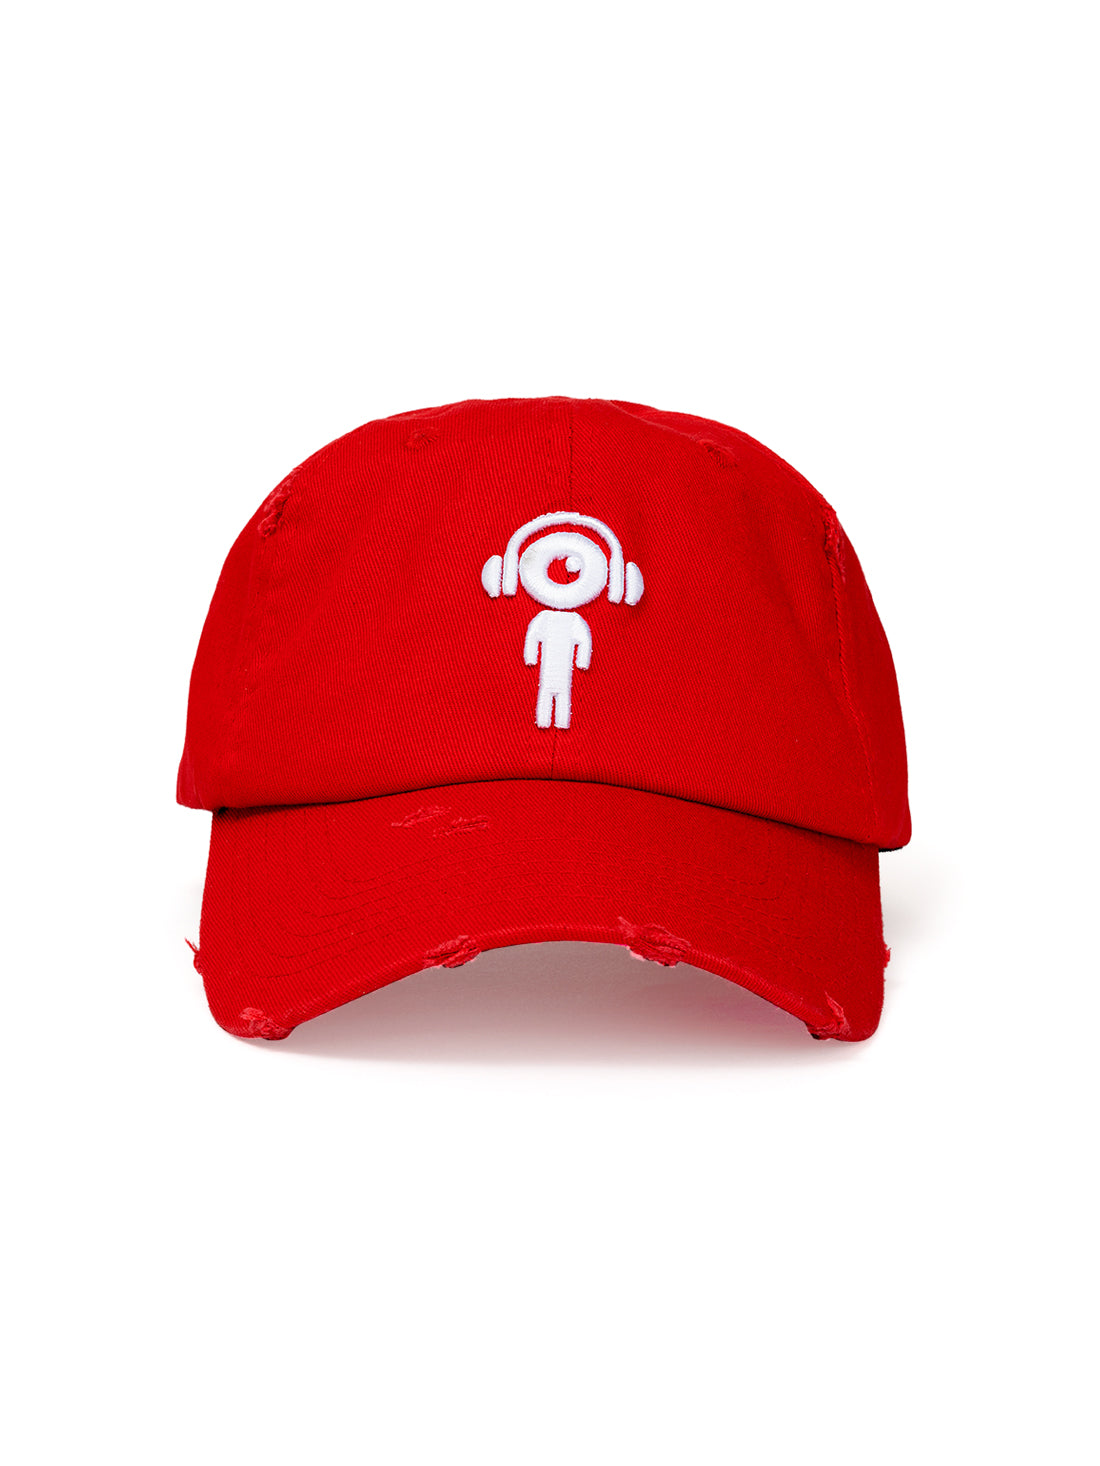 DISTRESS DAD HAT RED - WHITE Lil MAN